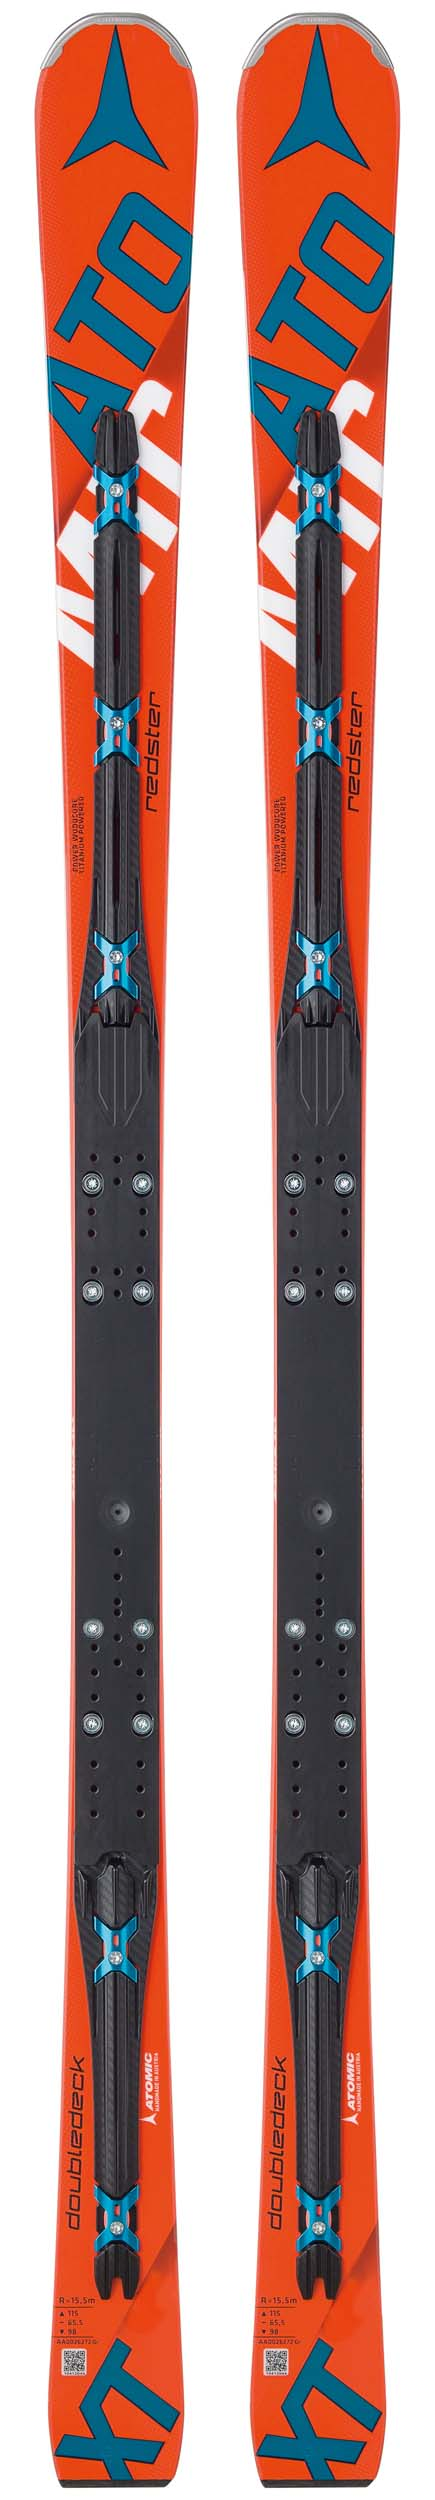 Atomic 2017 Redster D2 3.0 XT Skis w/Plate NEW !! 182cm